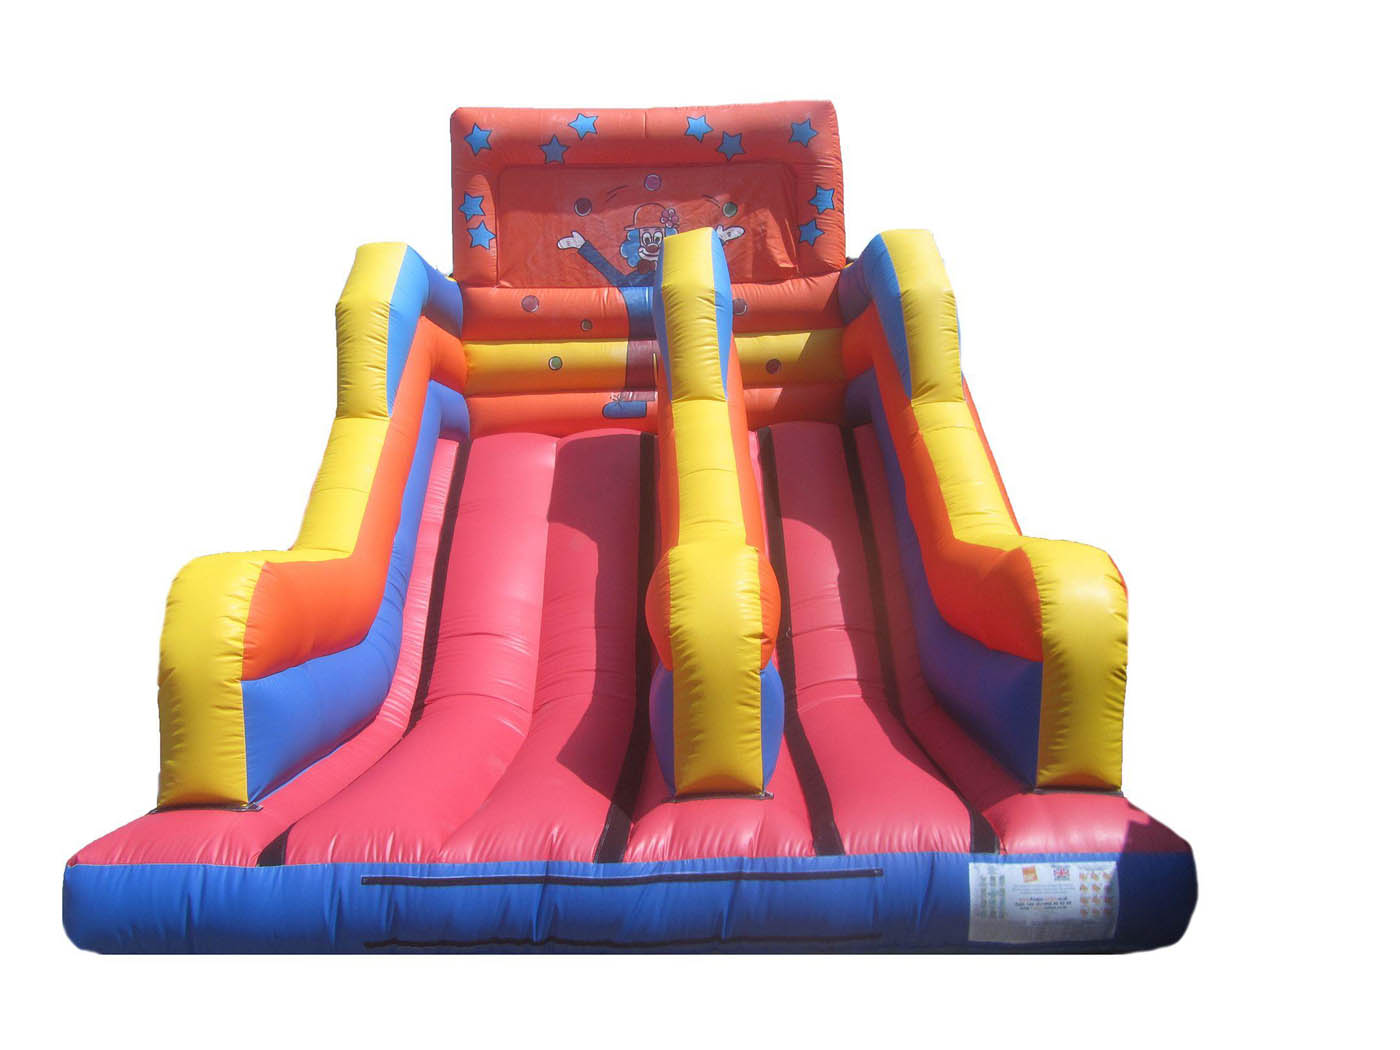 15ft-platform-clown-inflatable-slide-compressor